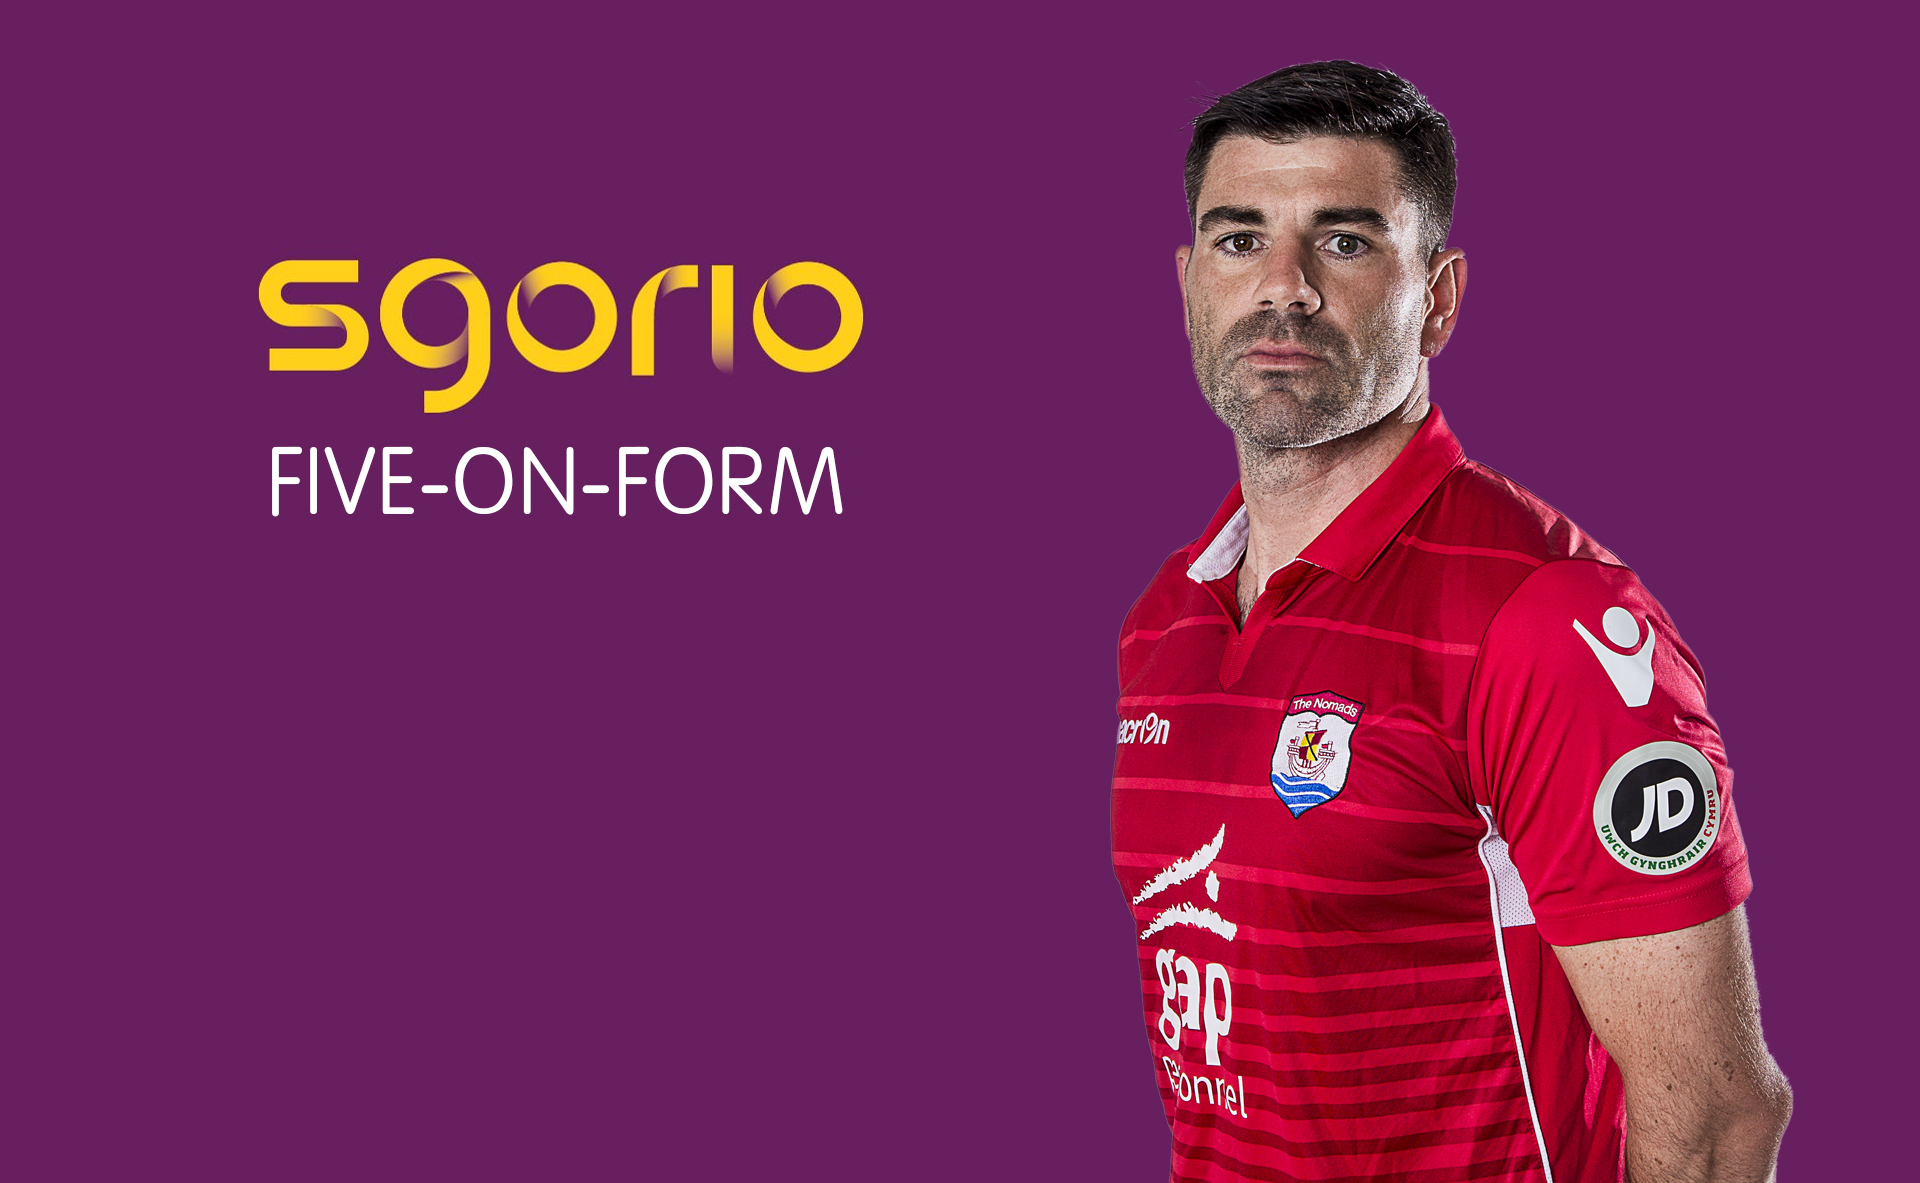 Michael Wilde has been named in the JD Welsh Premier League Matchday 4 Sgorio 5-on-form